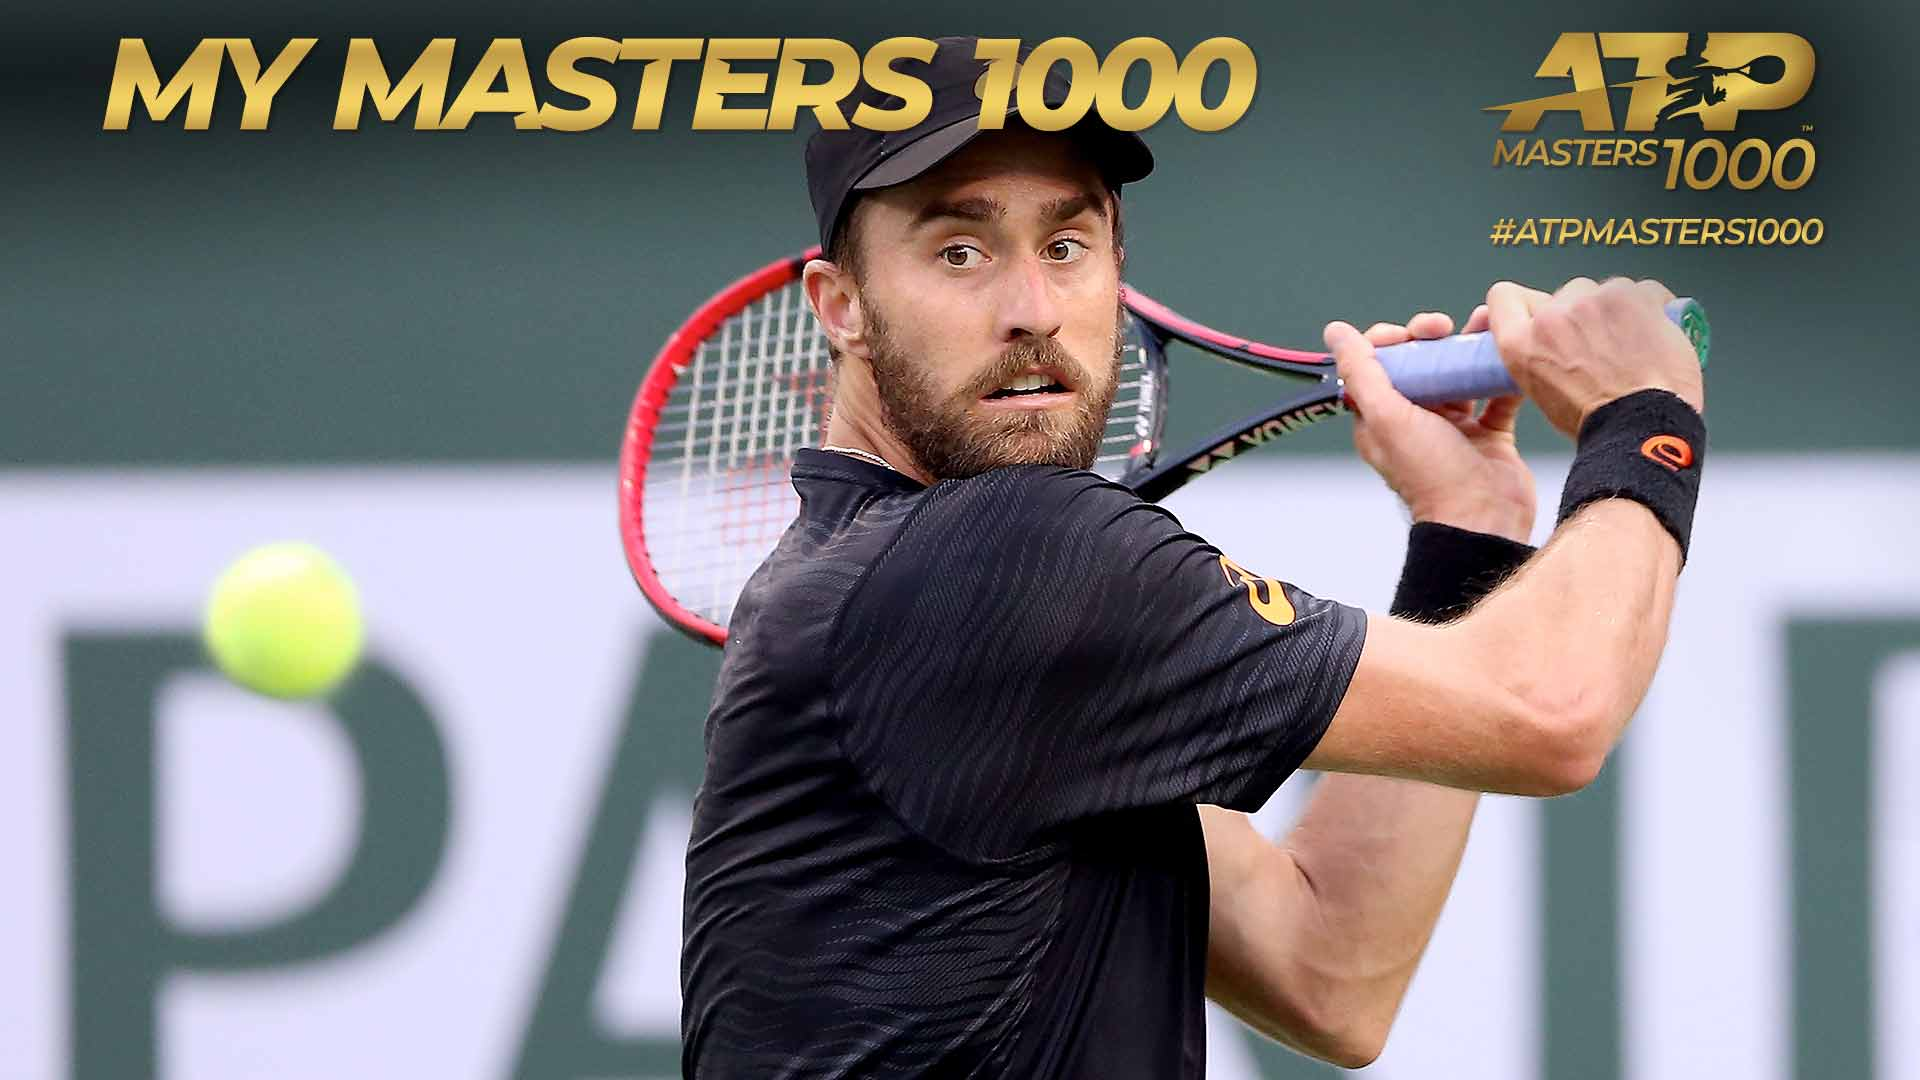 Steve Johnson plays Roger Federer at Indian Wells